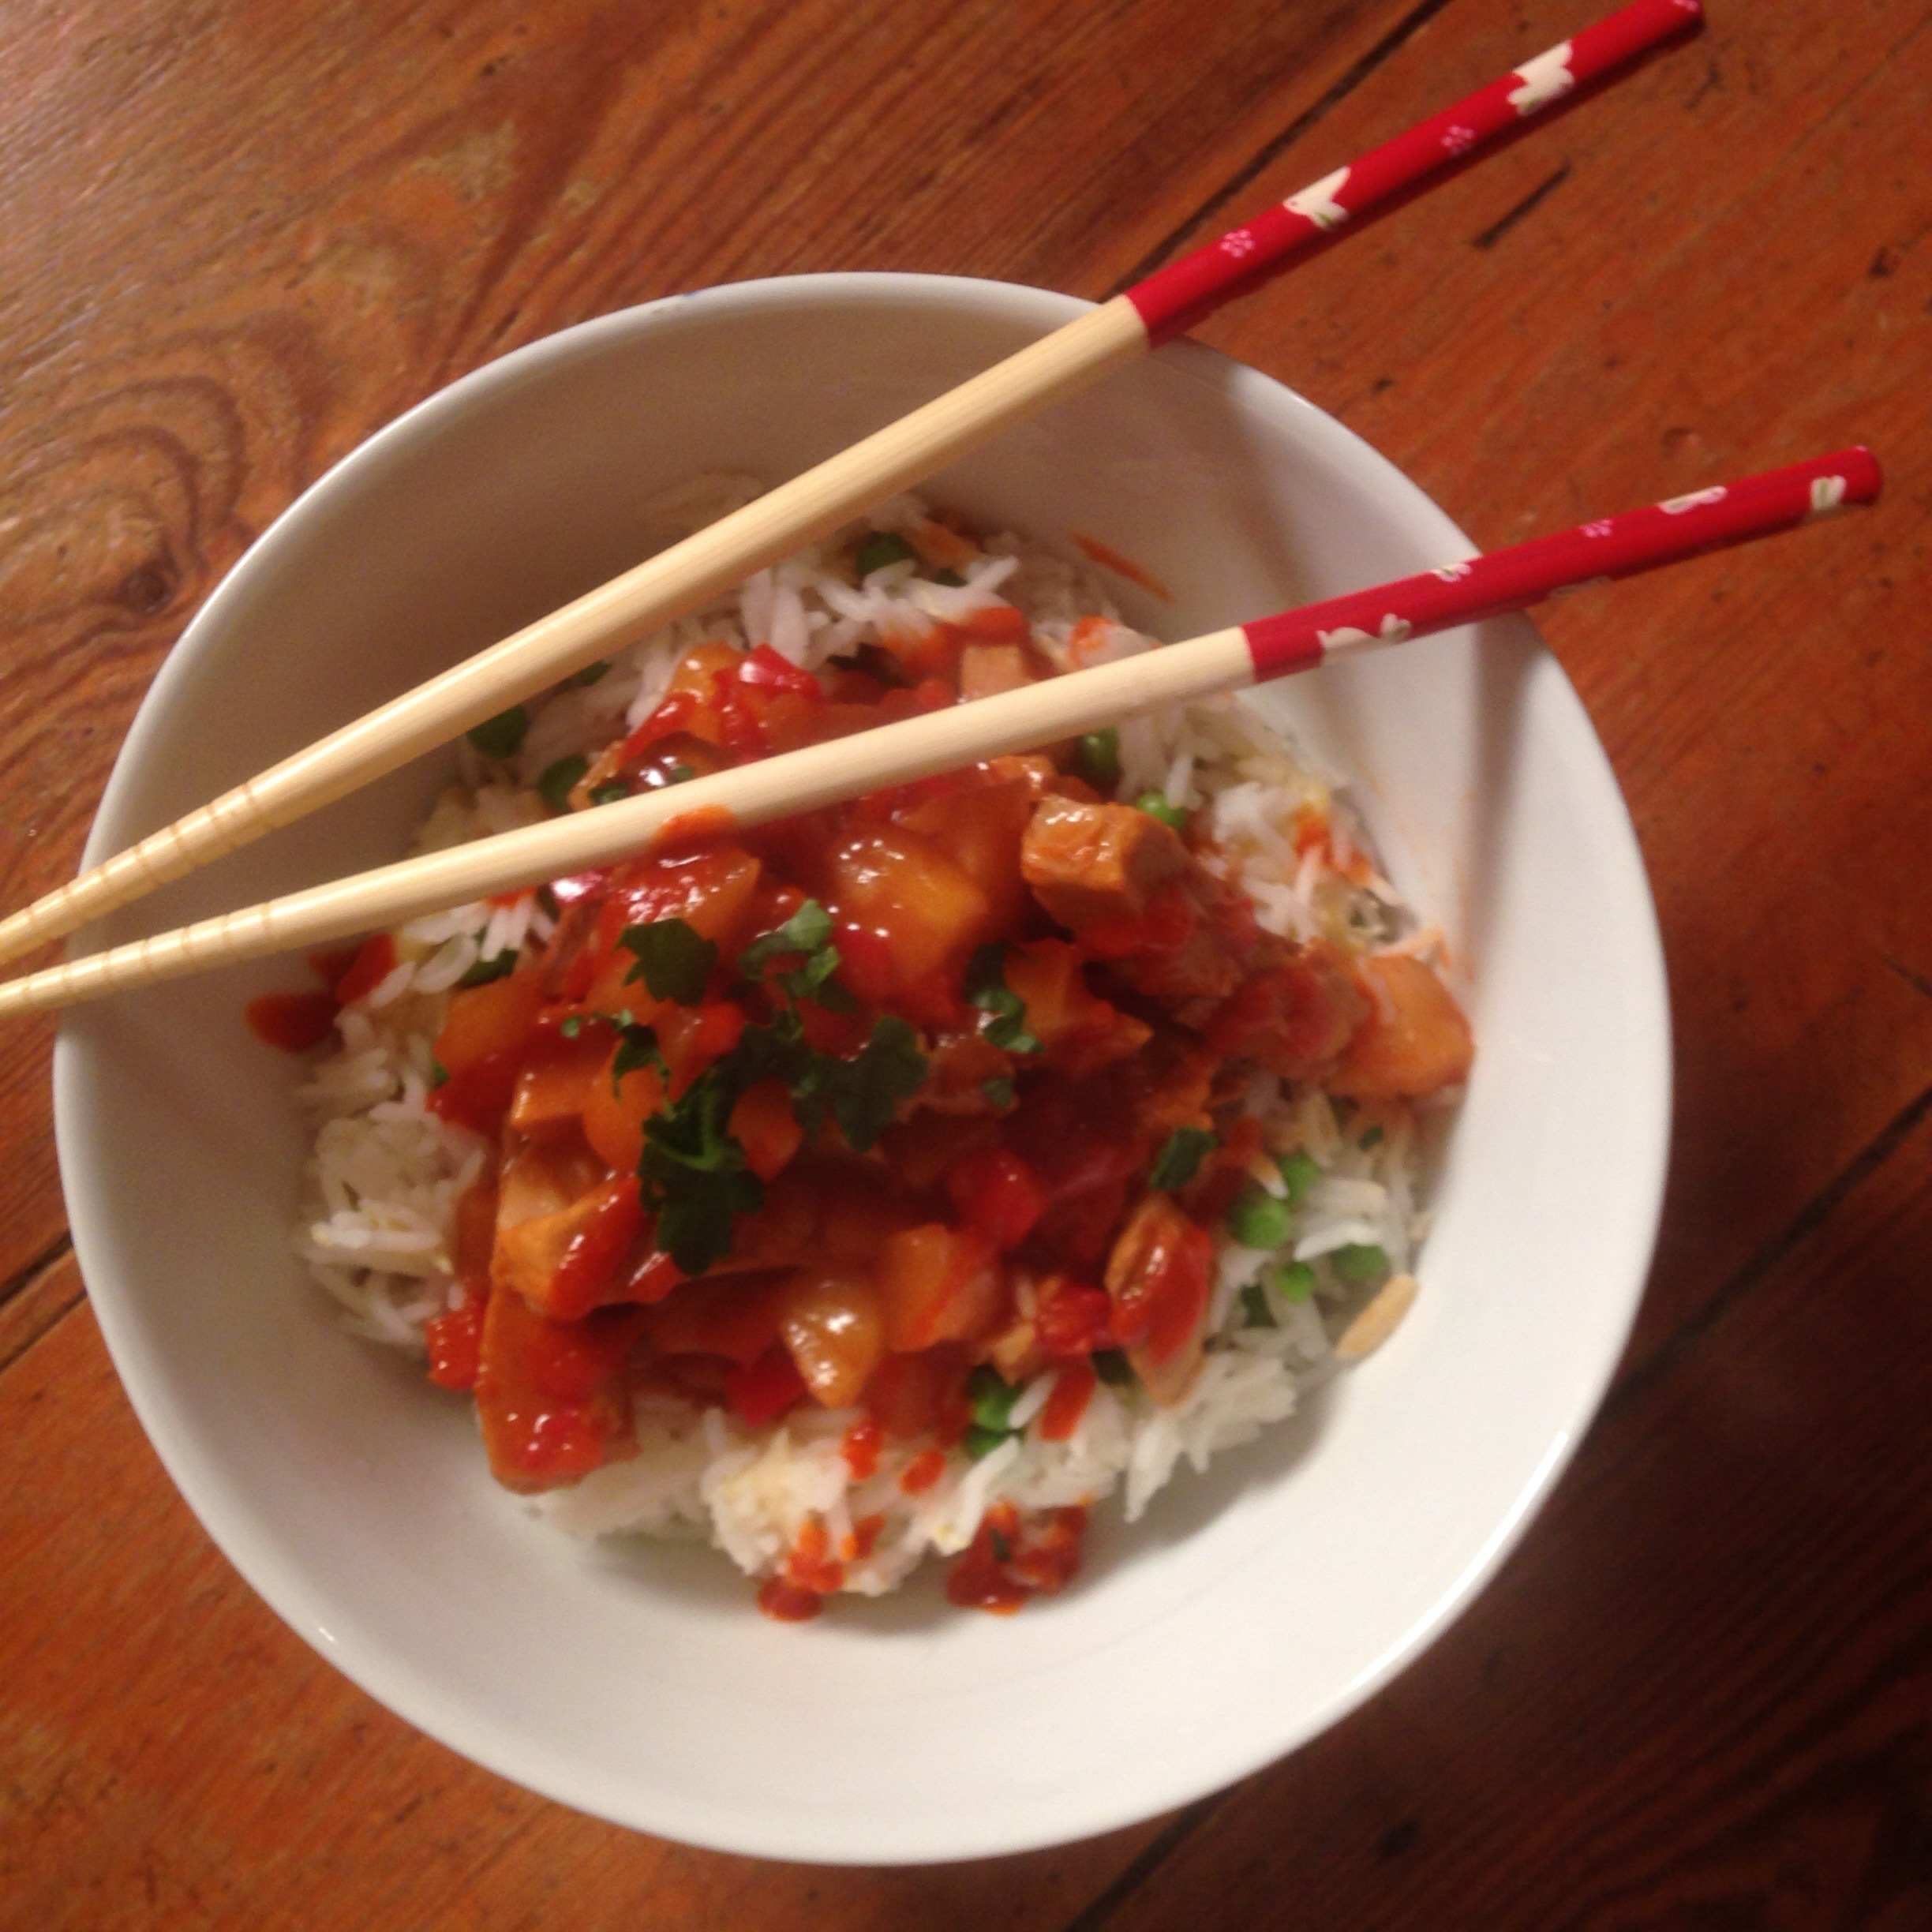 Sweet and sour pork with egg fried rice